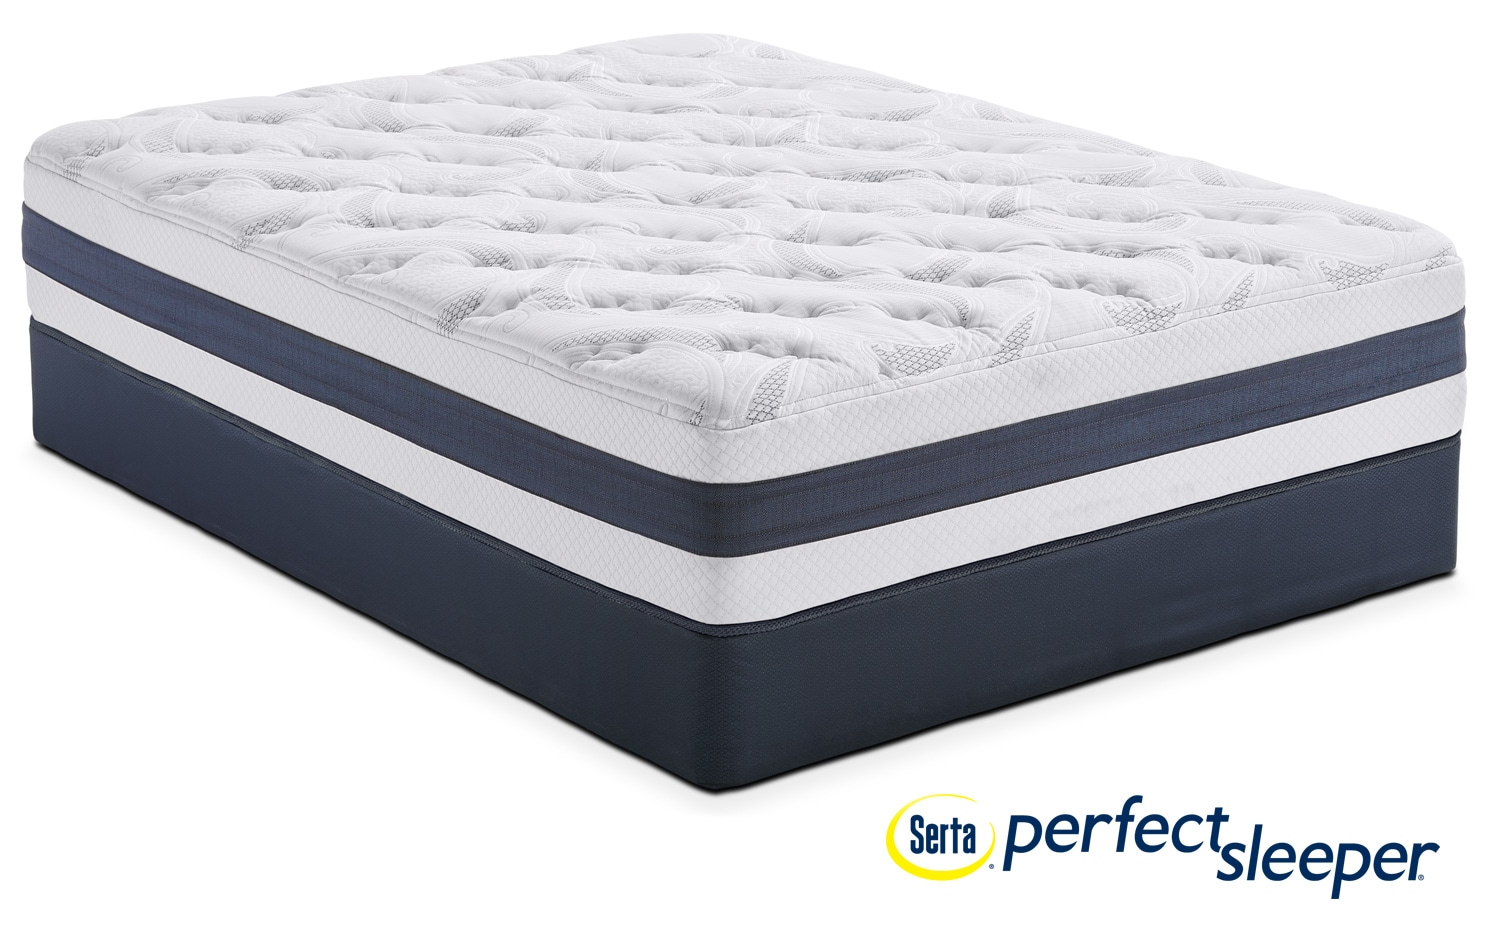 Mattresses and Bedding - Landing Manor Plush Twin XL Mattress and Foundation Set